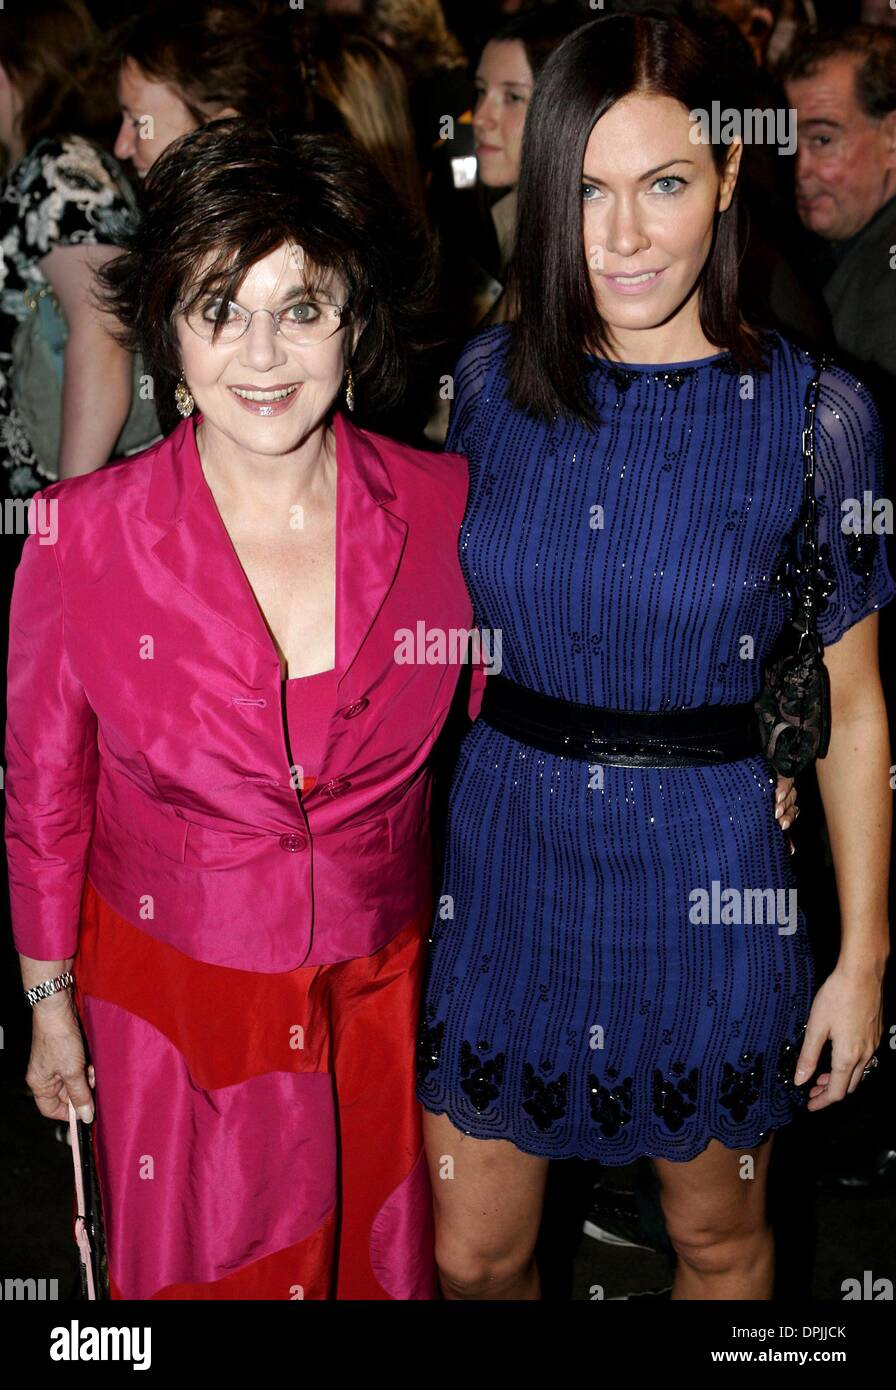 Oct. 17, 2006 - Palace Theatre, LONDON, ENGLAND - MIRIAM AND LINDSEY STOPPARD.MOTHER AND DAUGHTER.UK PREMIERE OF NEW WEST END SHOW SPAMALOT.PALACE THEATRE, LONDON, ENGLAND.17 October 2006.DIE19244.CREDIT:  -   K51014(Credit Image: © Globe Photos/ZUMAPRESS.com) - Stock Image